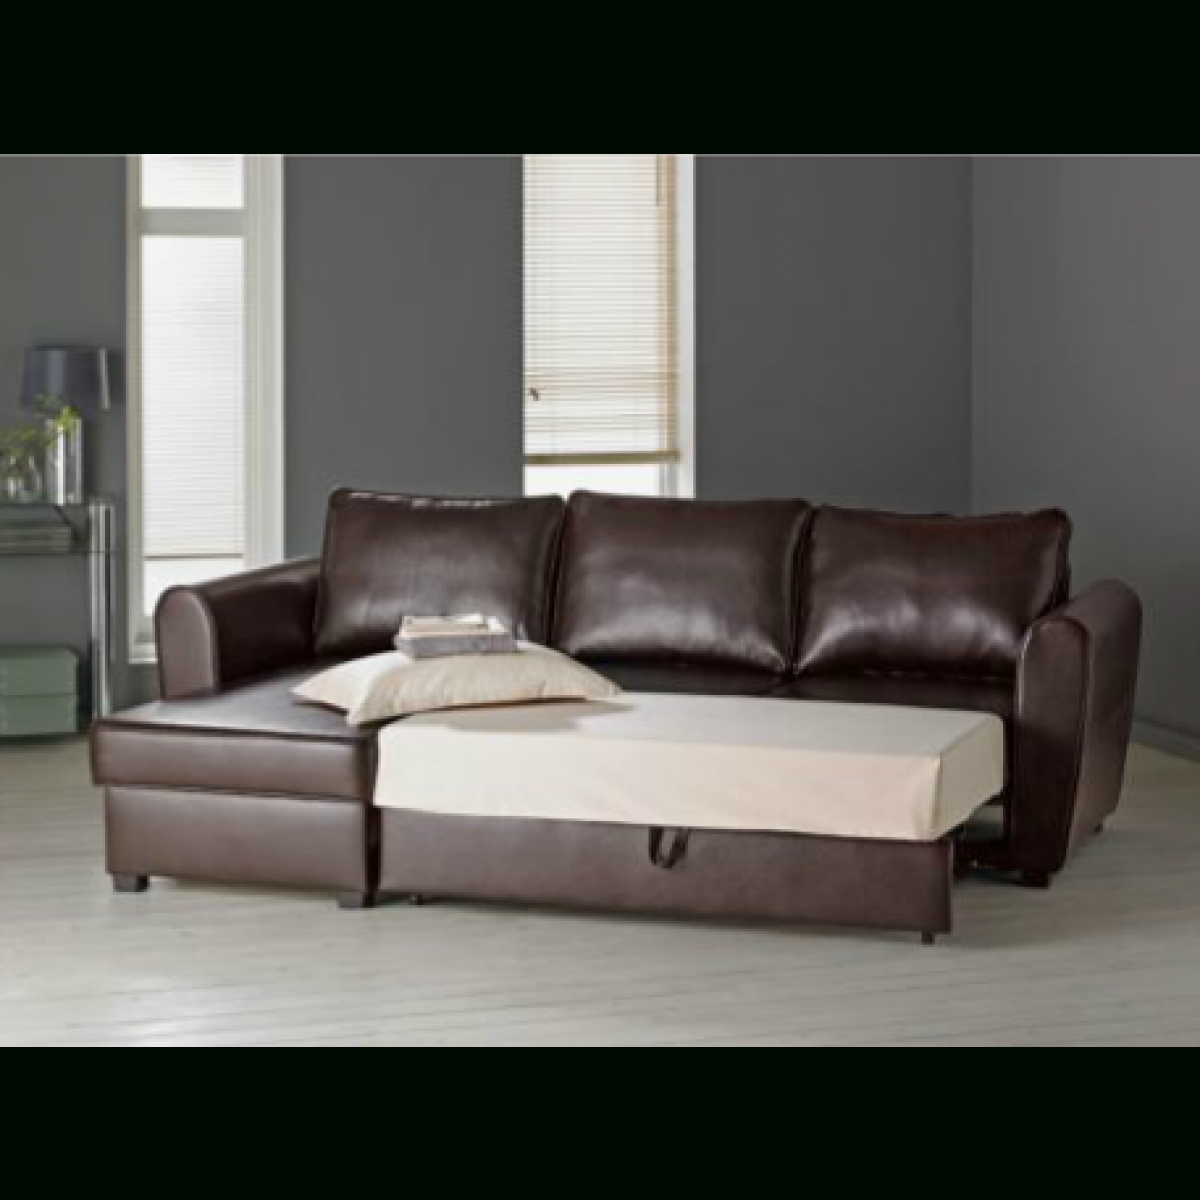 Chaise Sofa Beds With Storage Inside Well Liked Siena Leather Effect Corner Sofa Bed With Storage Chocolate (View 13 of 15)